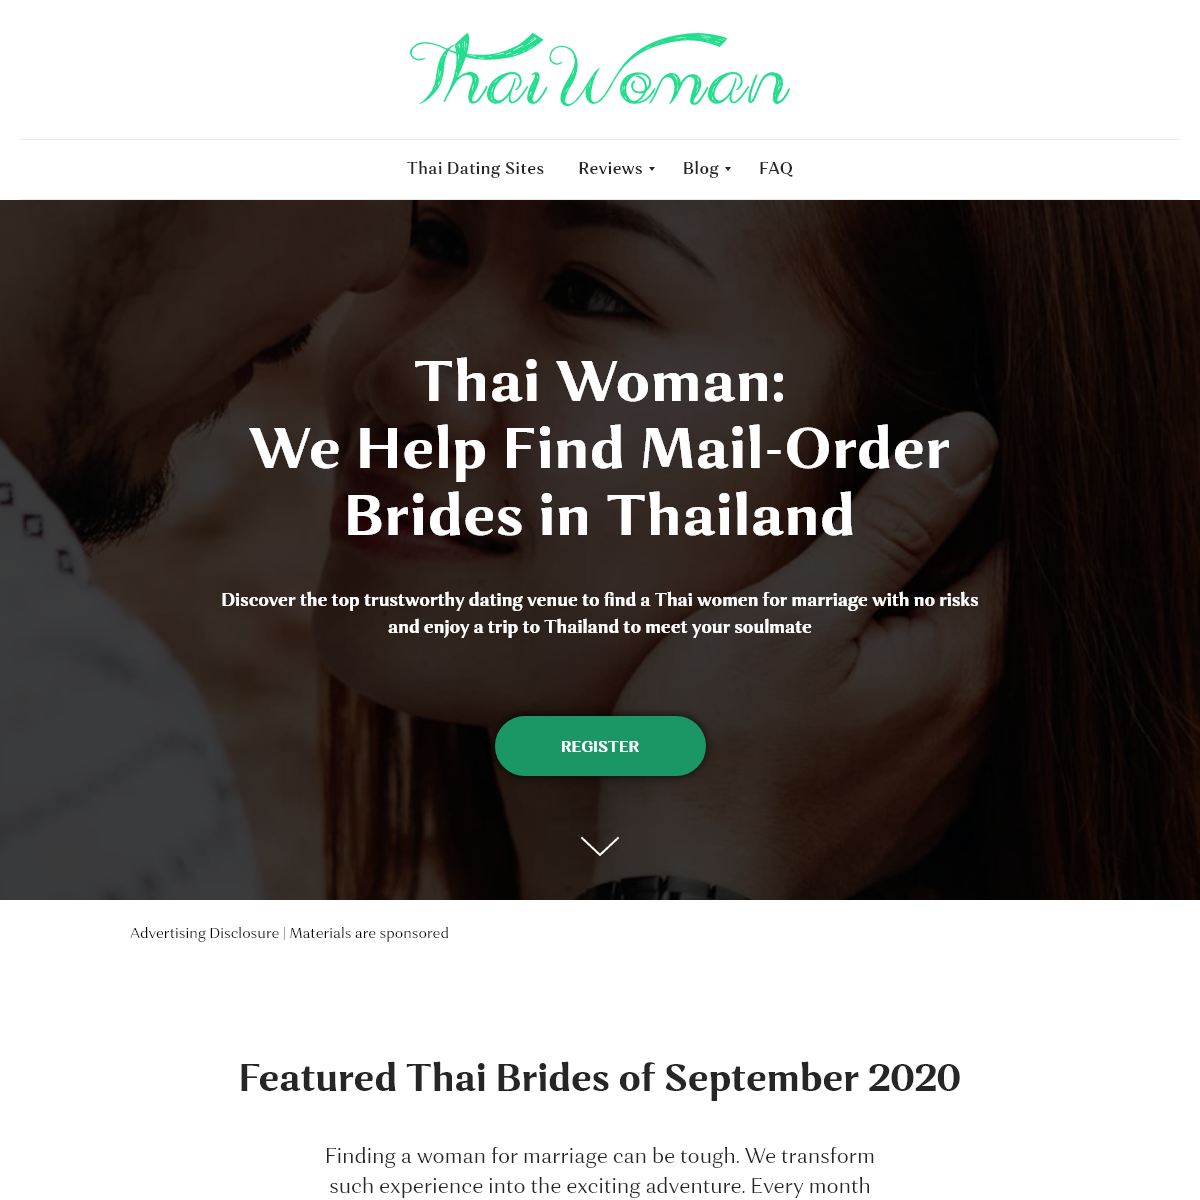 Thai Mail-Order Brides - Meet a Woman for Marriage From Thailand